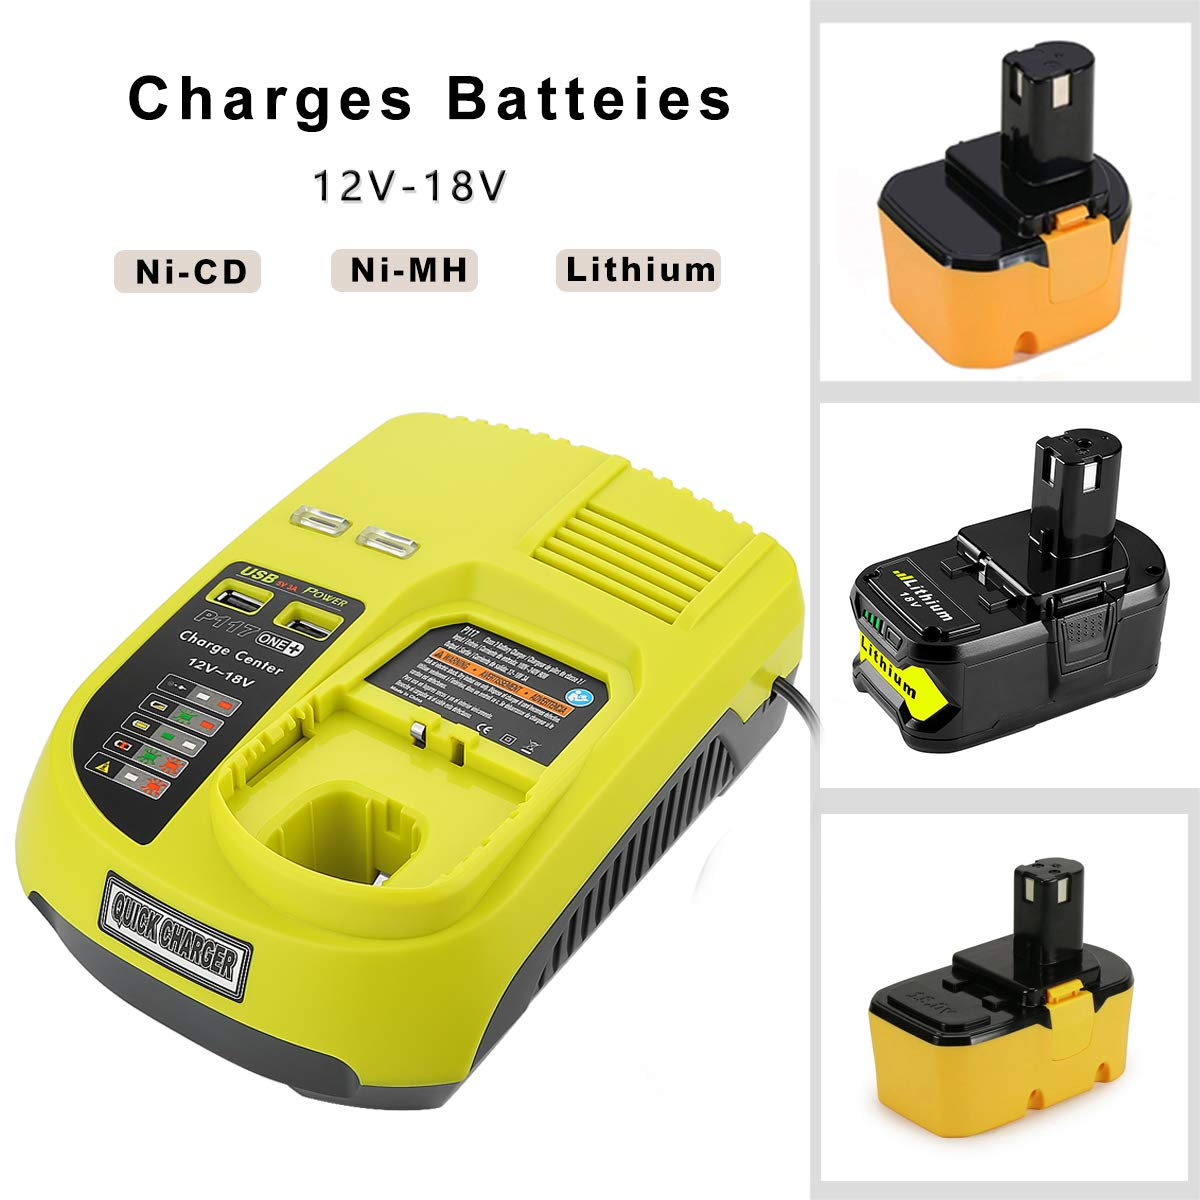 12v-18V For Ryobi P117 Rechargeable Battery Charger Battery Pack Power Tool Ni-Cd Ni-Mh Li-Ion P110, P111, P107